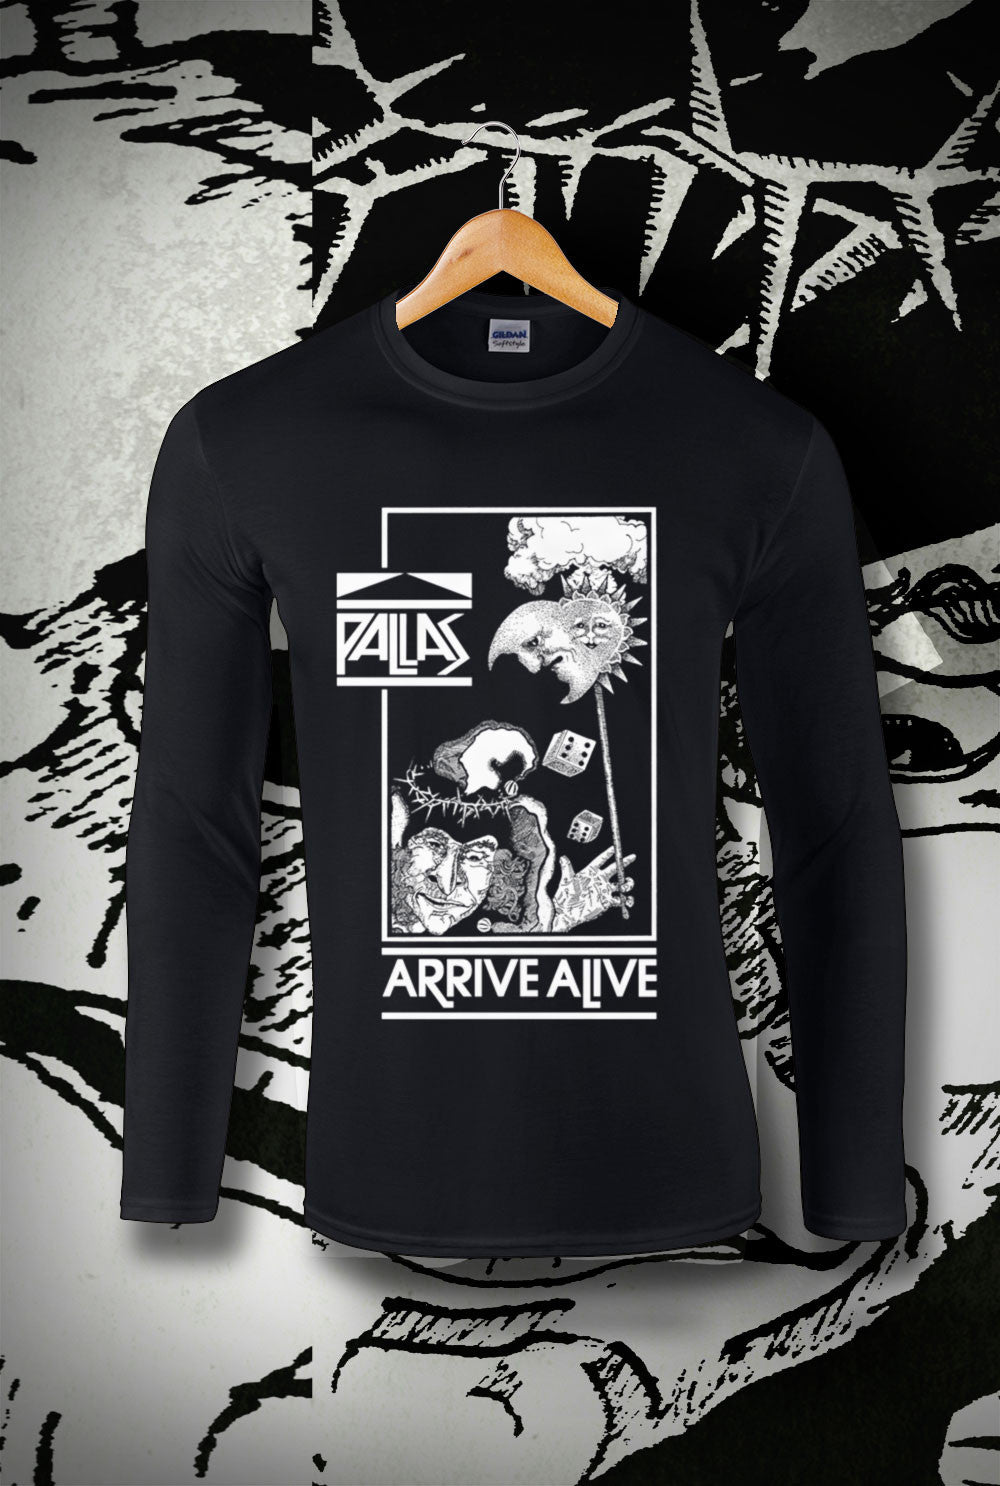 Pallas Arrive Alive Long Sleeve T-Shirt<p> In Black, White, Red and Navy Custom T Shirt by Lets Get Shirty Dot Com